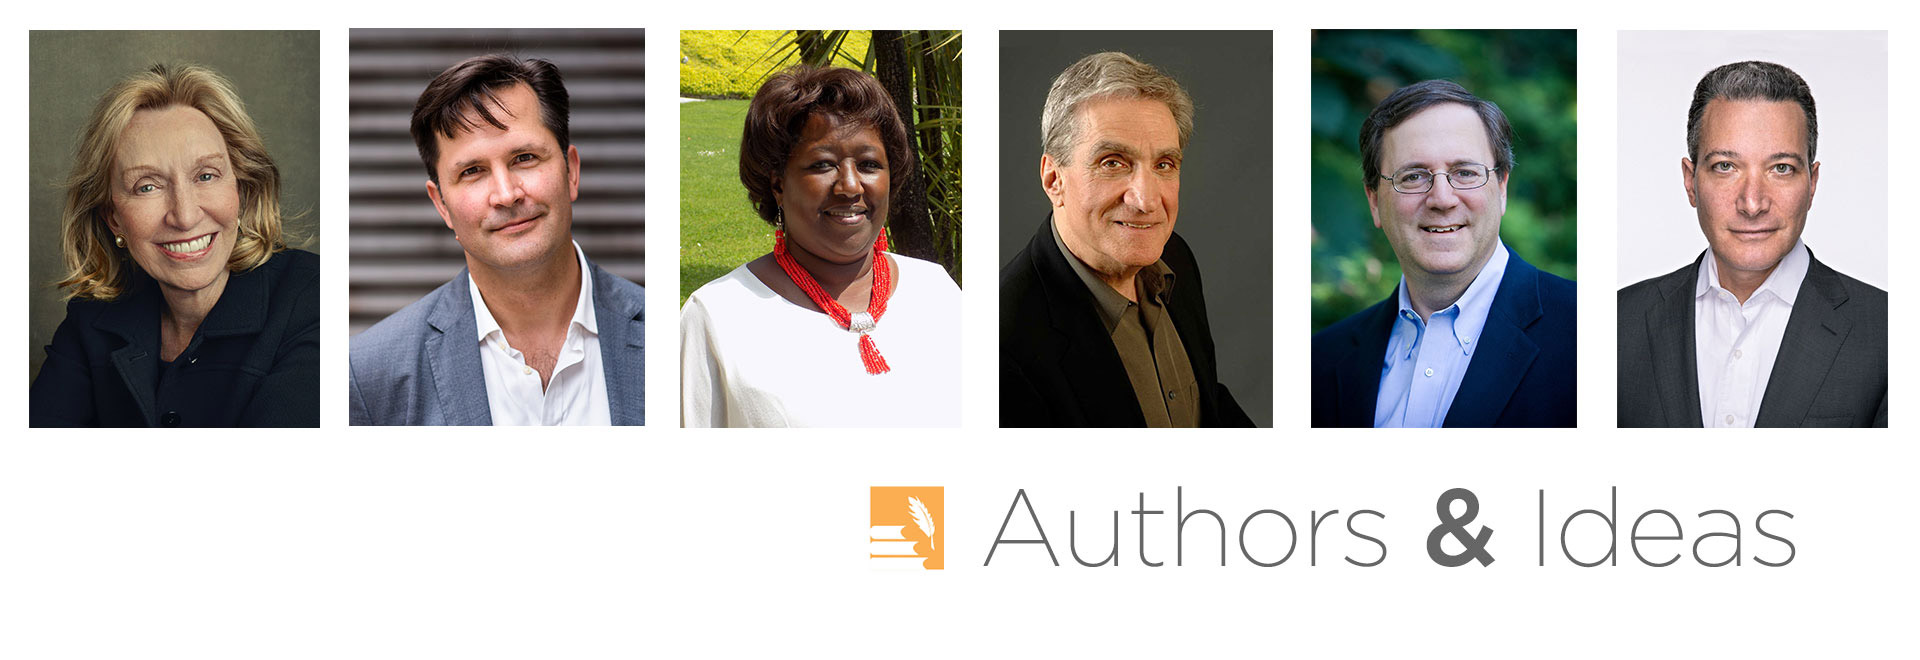 Authors and Ideas